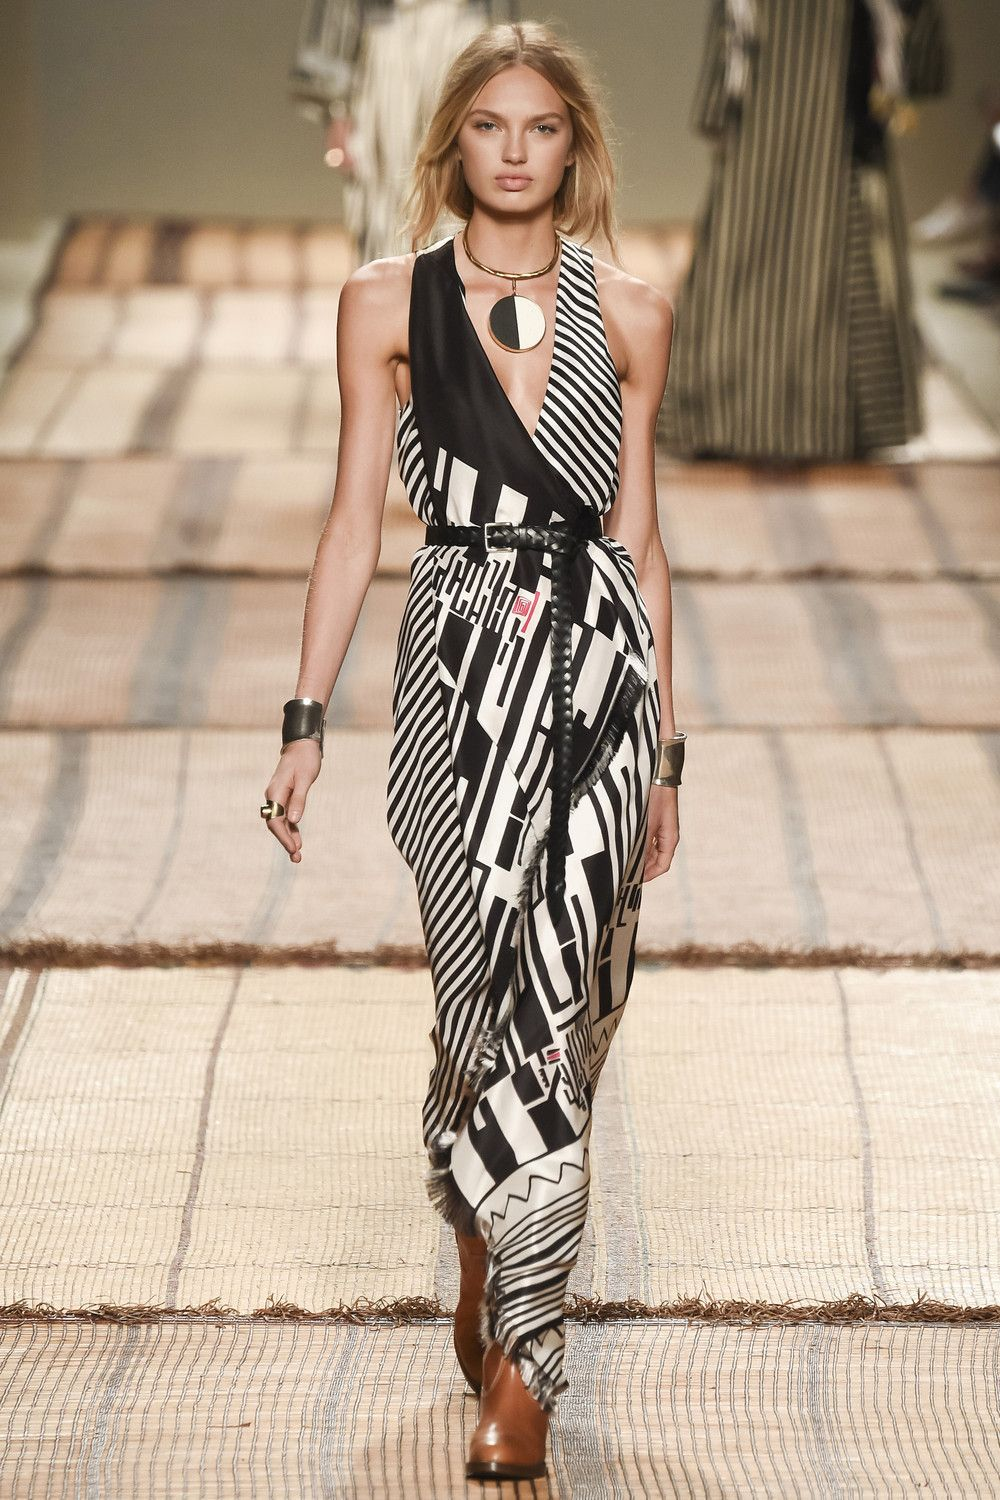 dress - Olympias charlotte new africa-inspired ss collection video